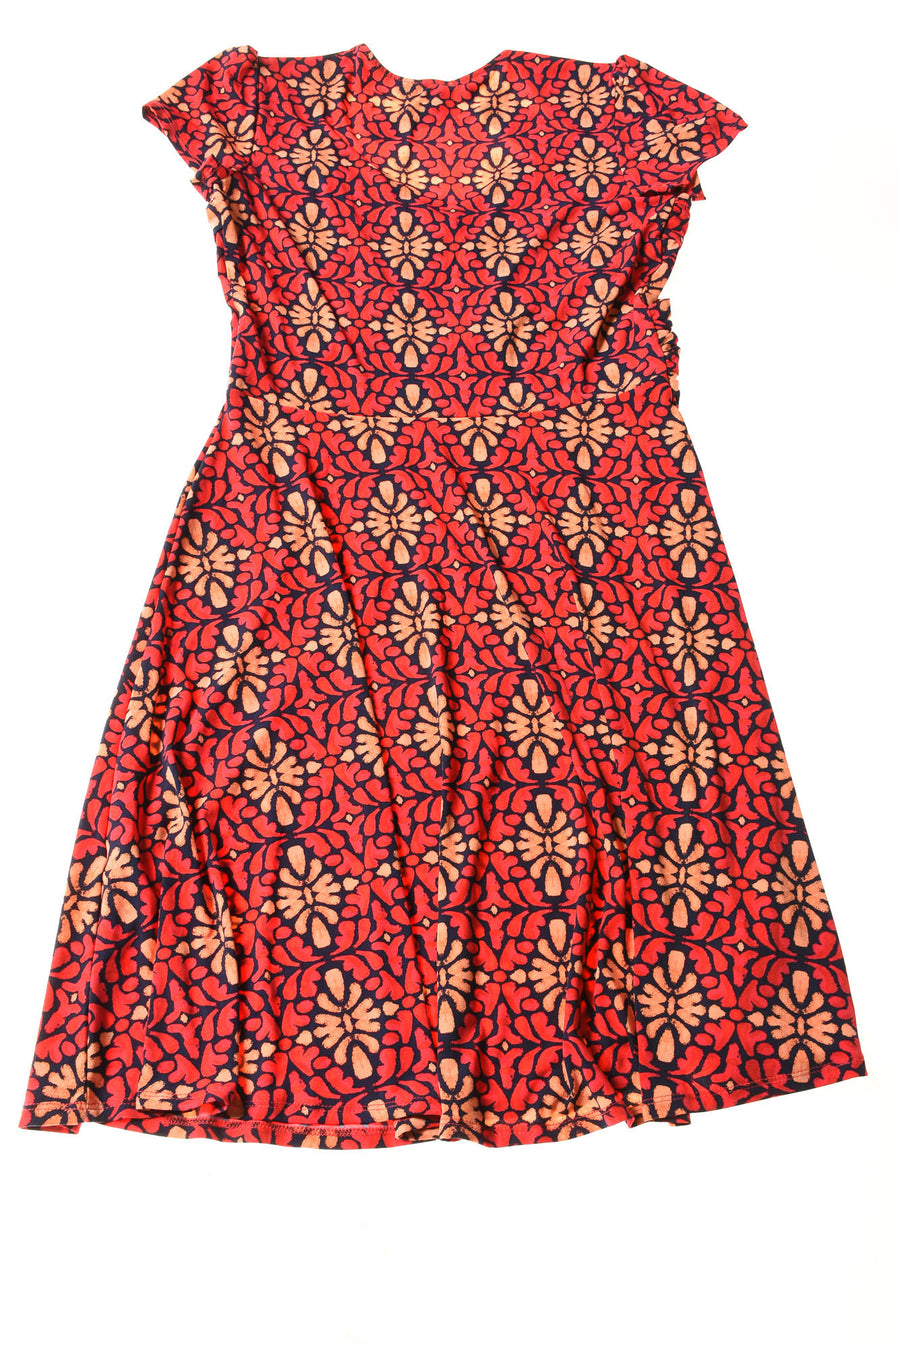 NEW Leota Women's Dress XX-Large Red & Orange